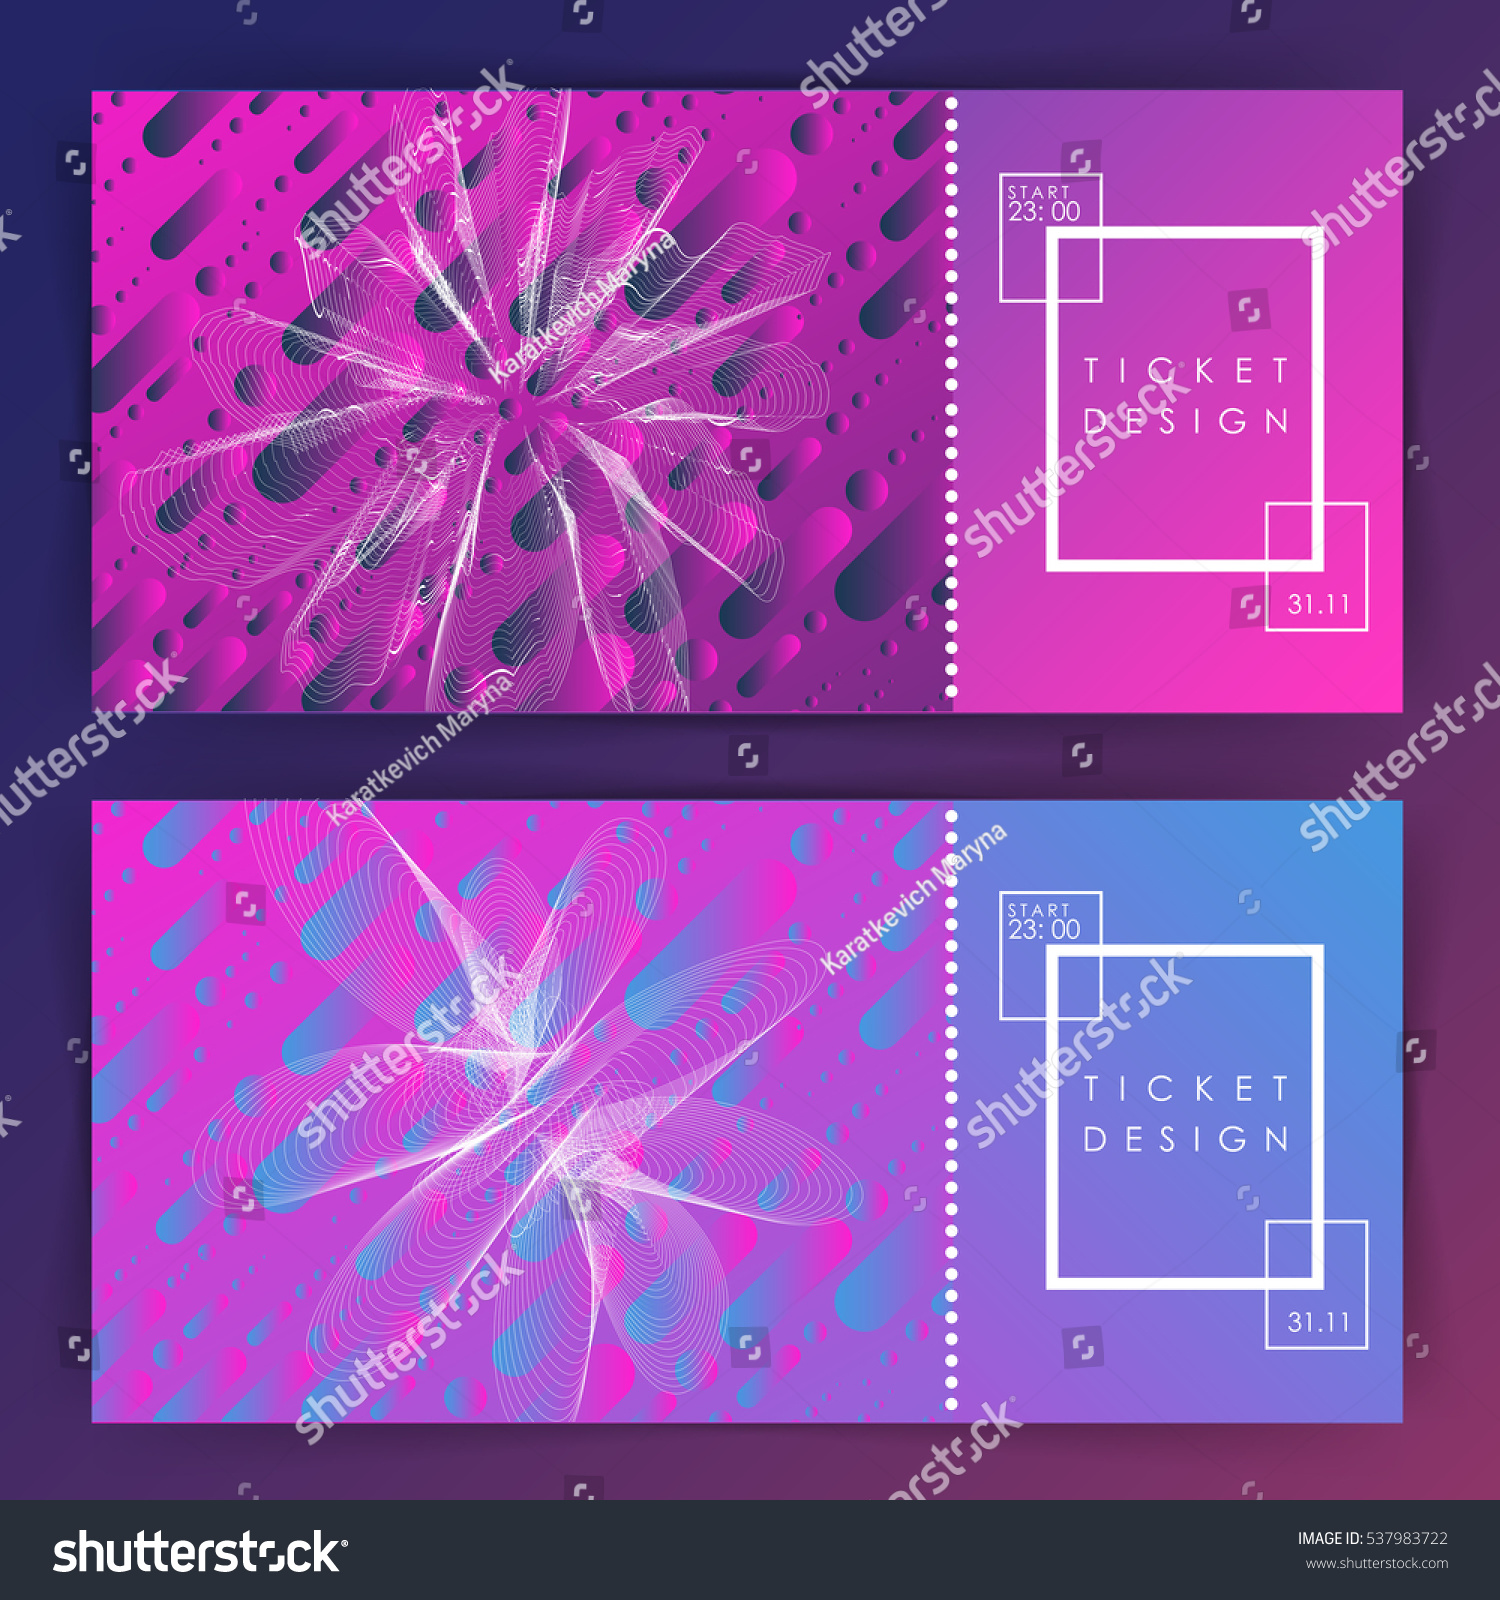 Ticket Design Party Invitation Template Two Stock Vector HD (Royalty ...